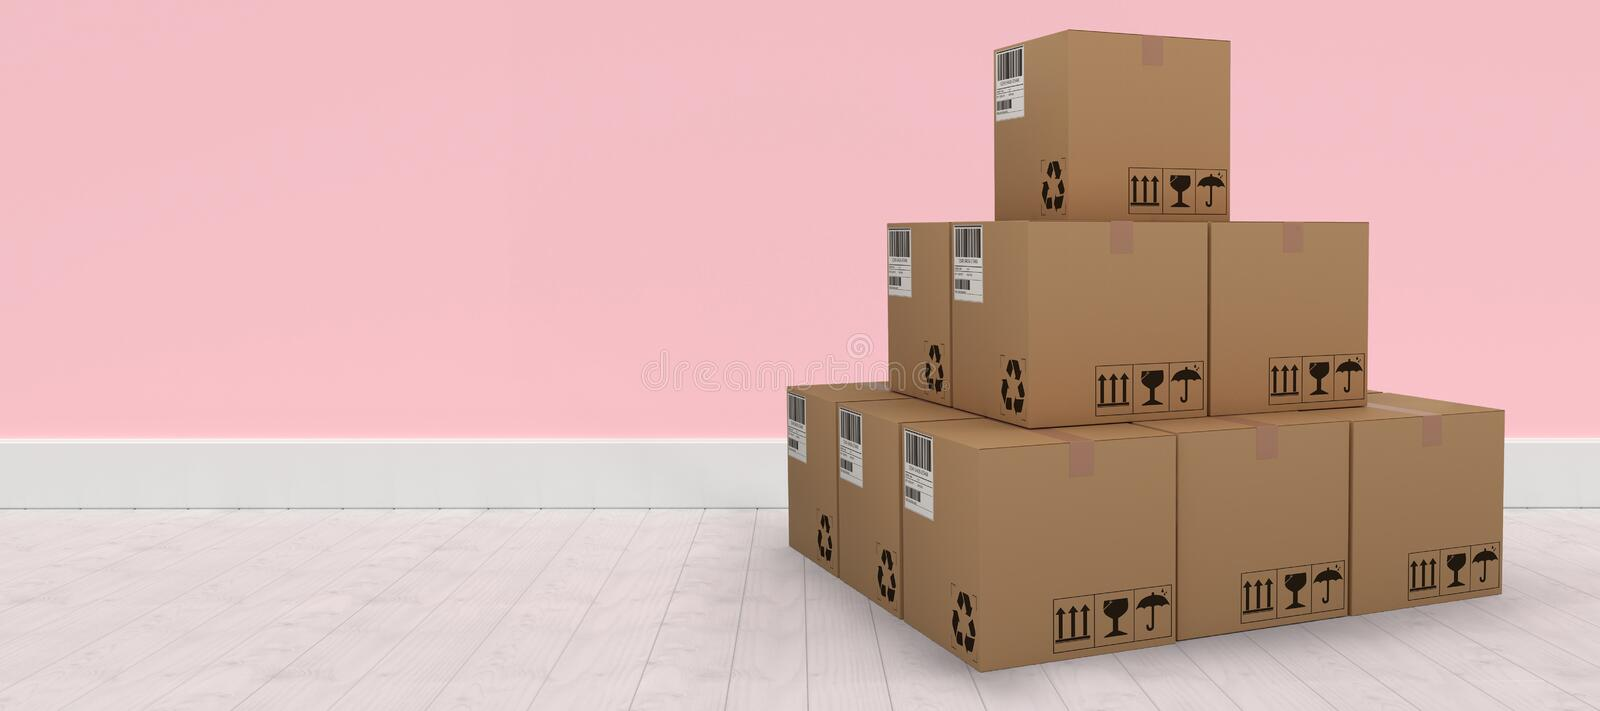 Composite 3d image of pile of packed cardboard boxes. Pile of packed cardboard 3D boxes against pink wall by hardwood floor vector illustration